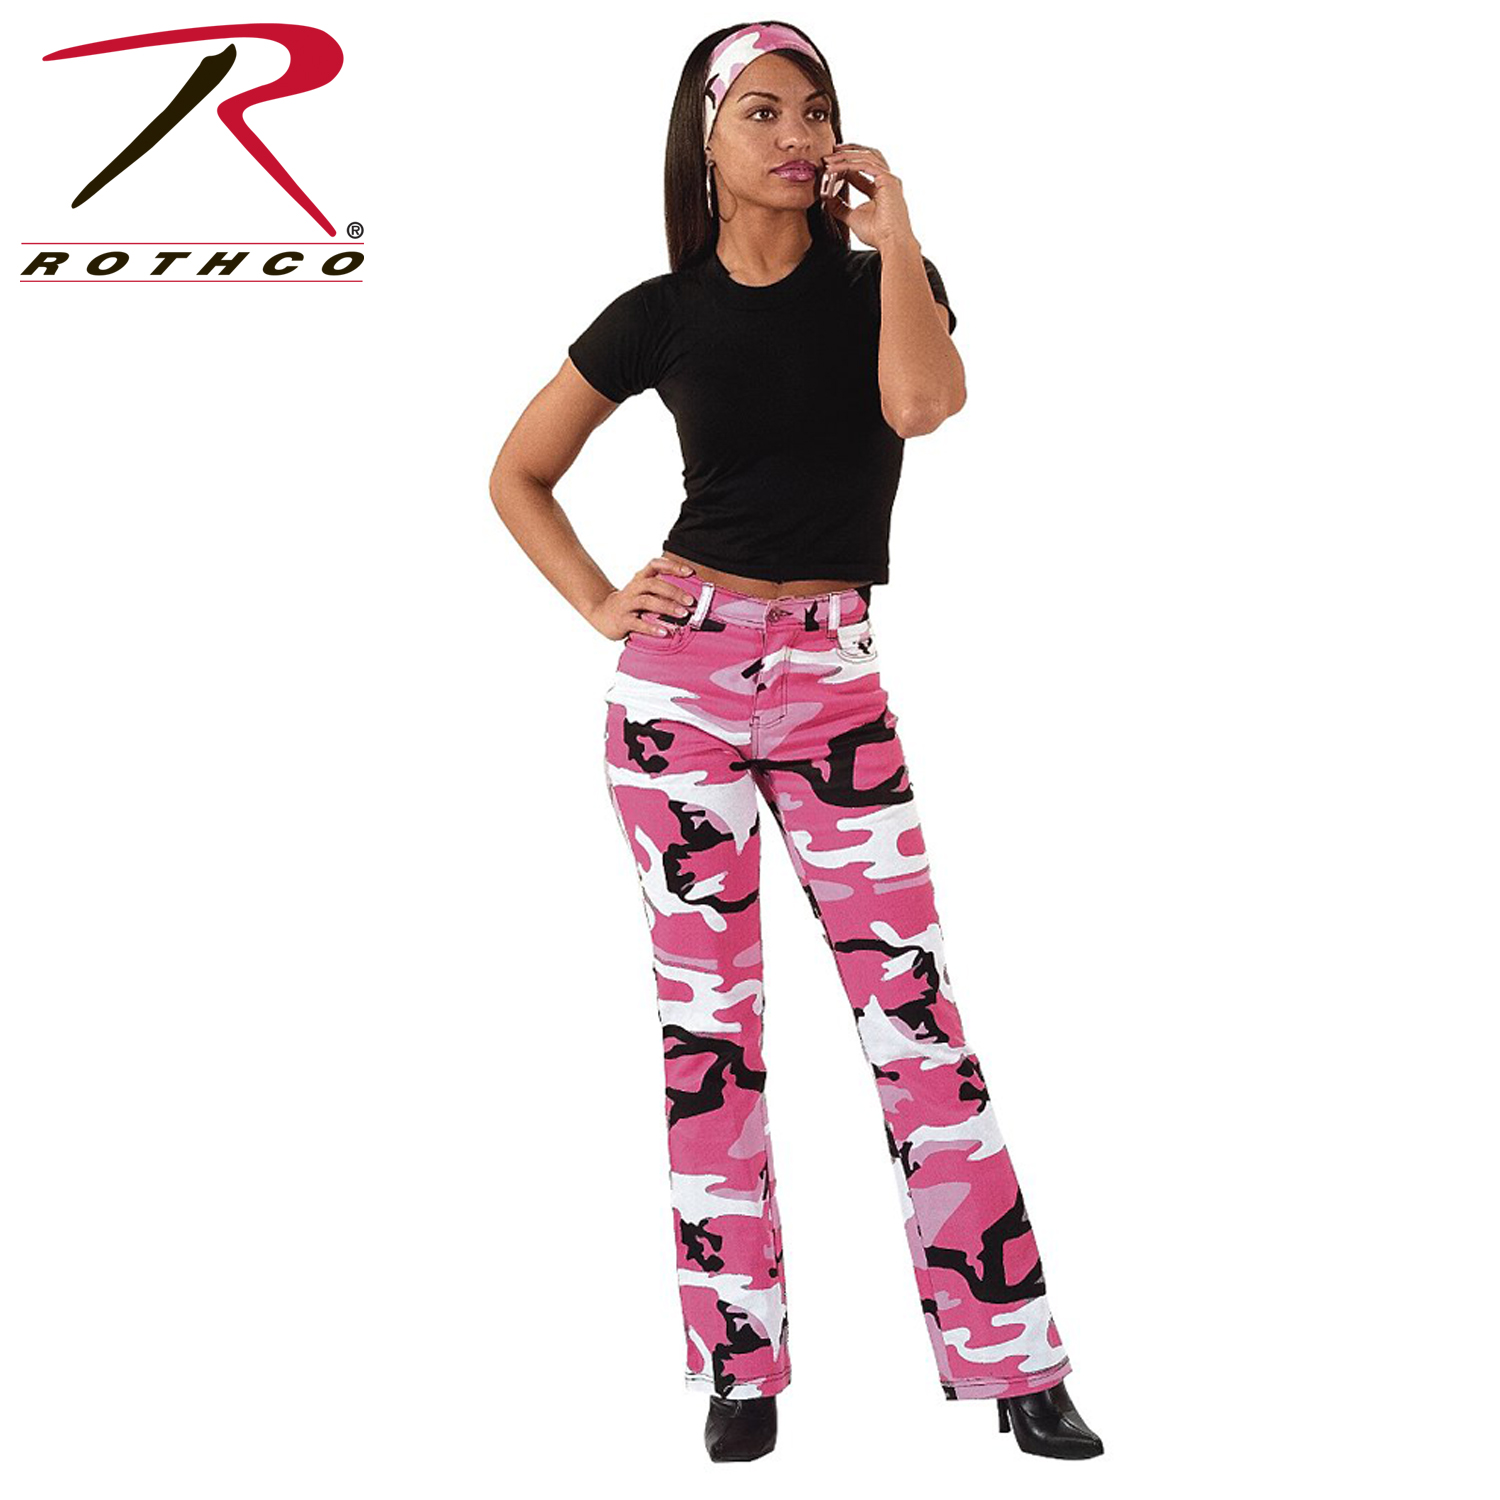 6e5f67102bb1c Rothco Women's Camouflage Stretch Flare Pants